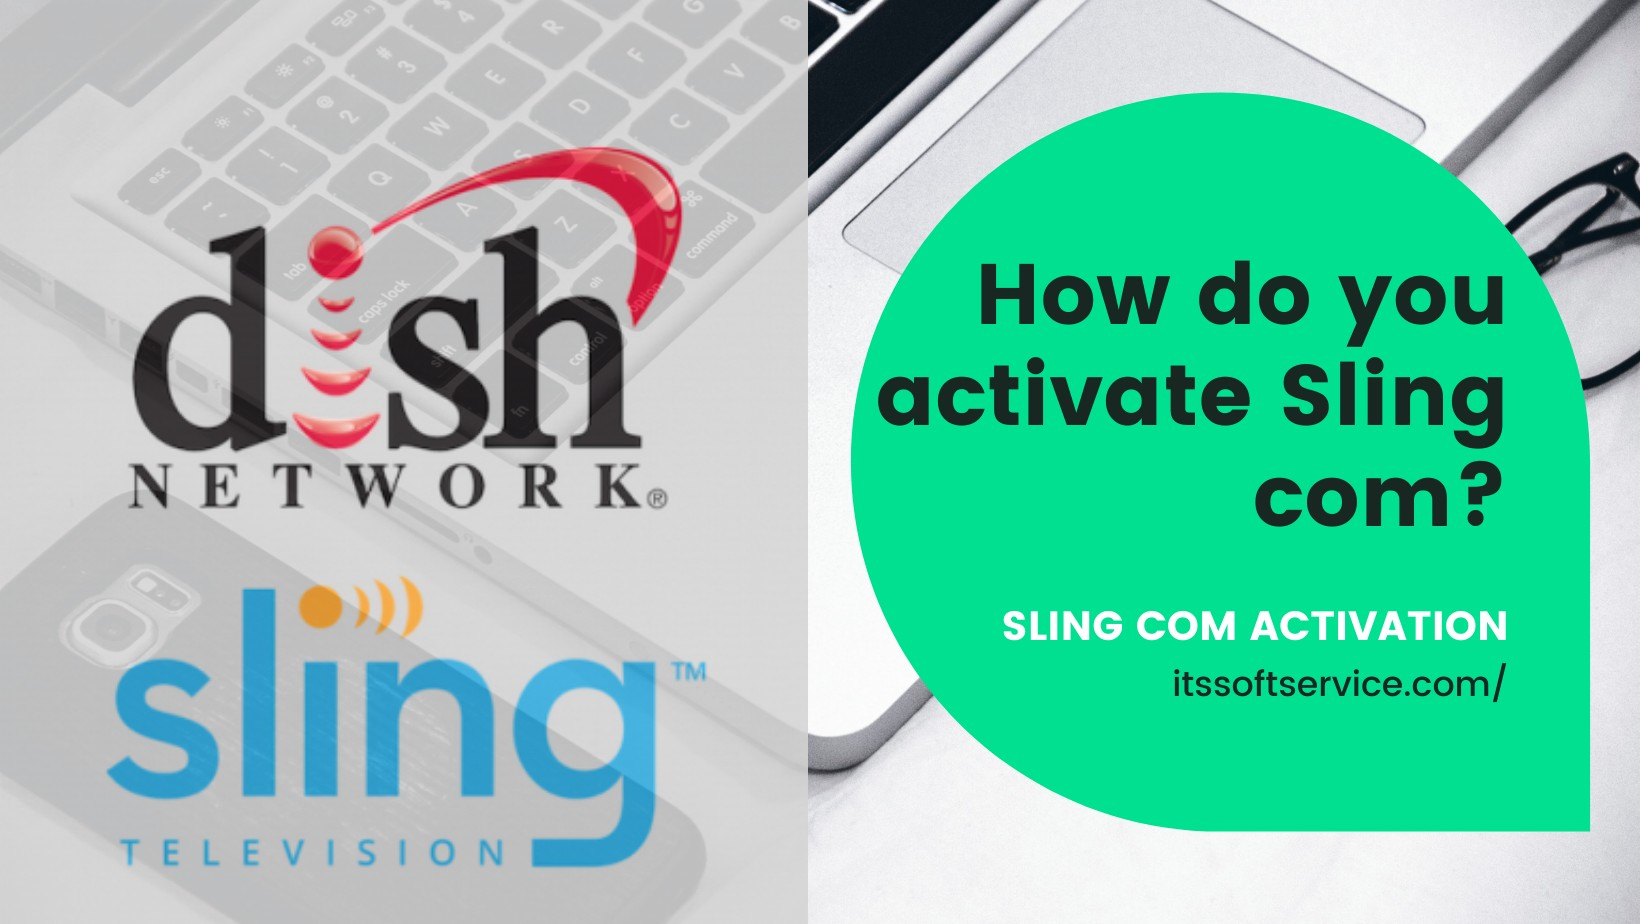 Sling TV Activation